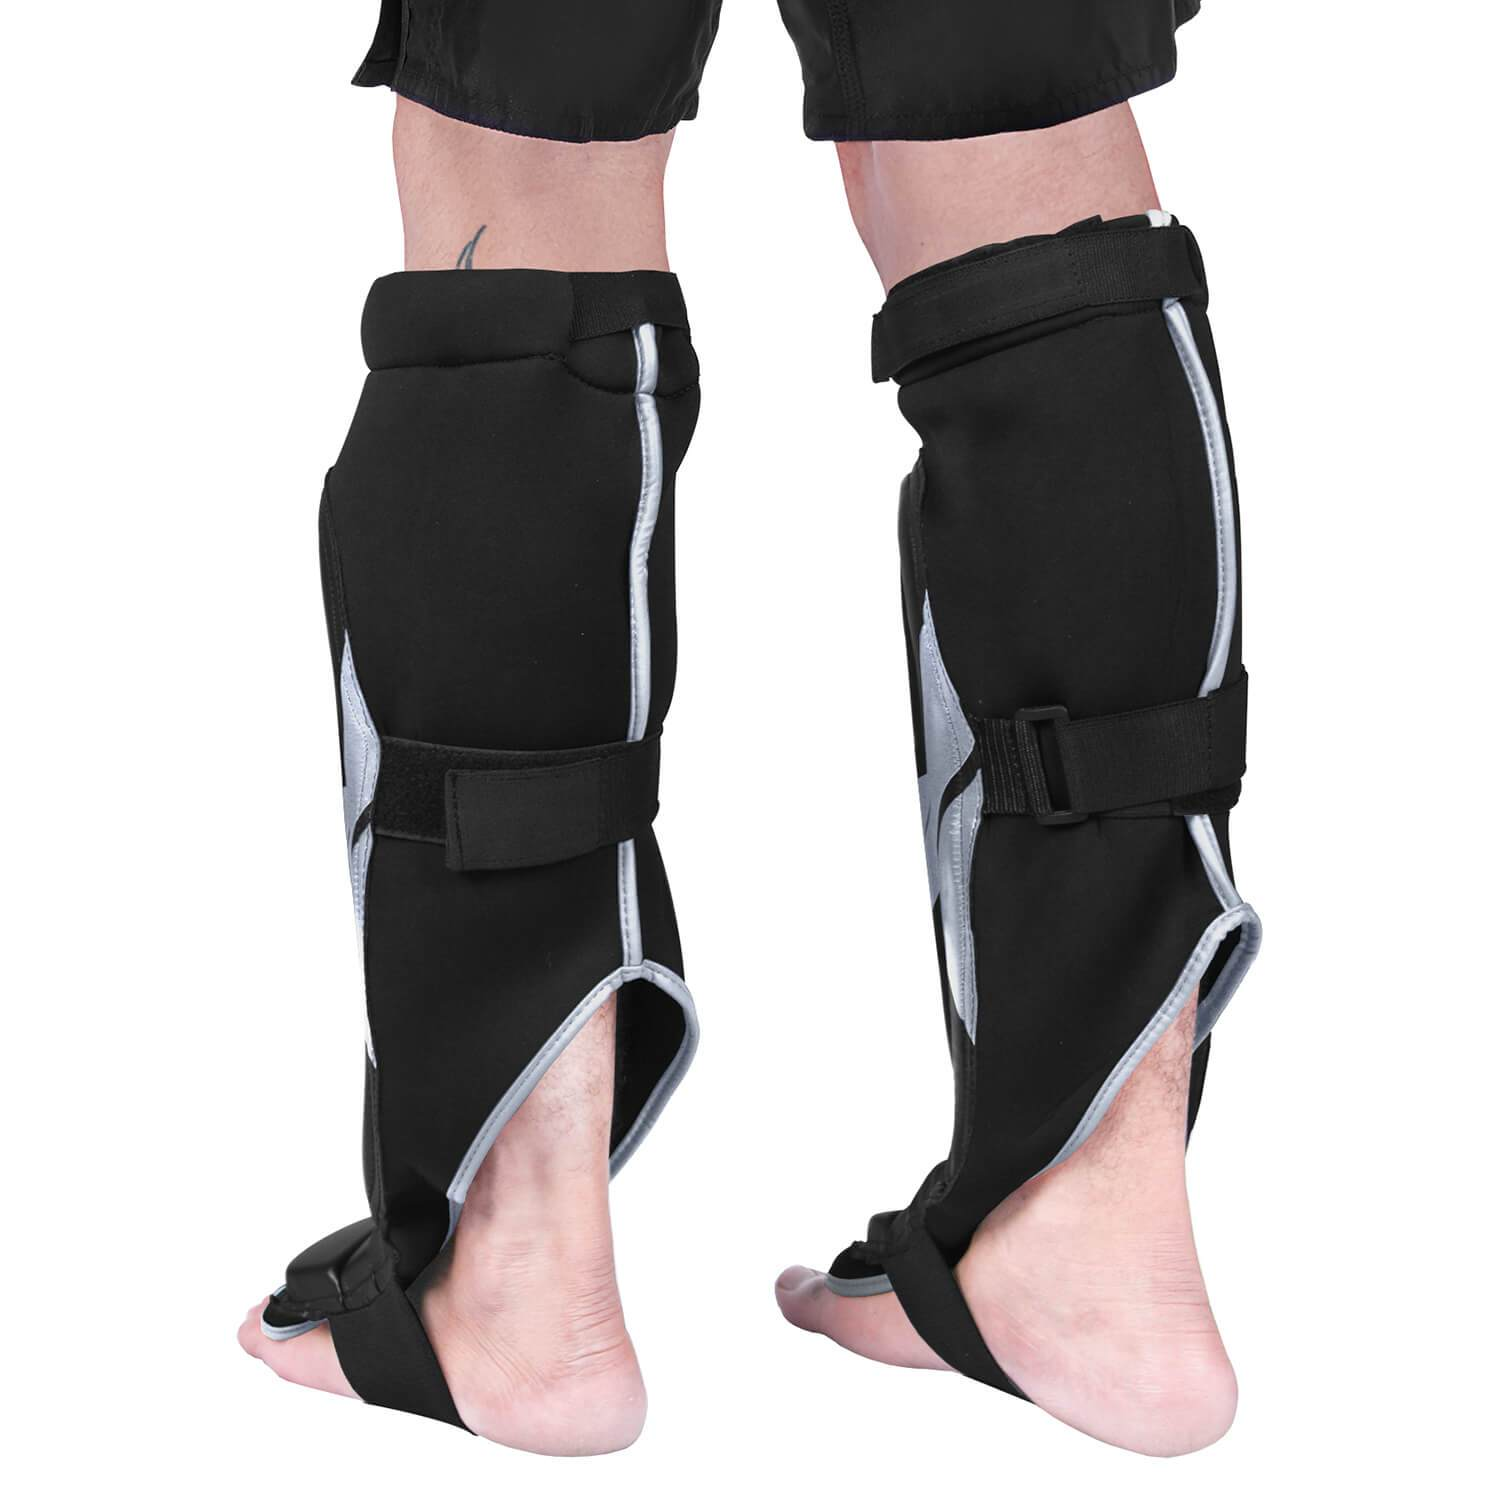 Load image into Gallery viewer, Elite Sports Star Series Black/Silver MMA Shin Guards